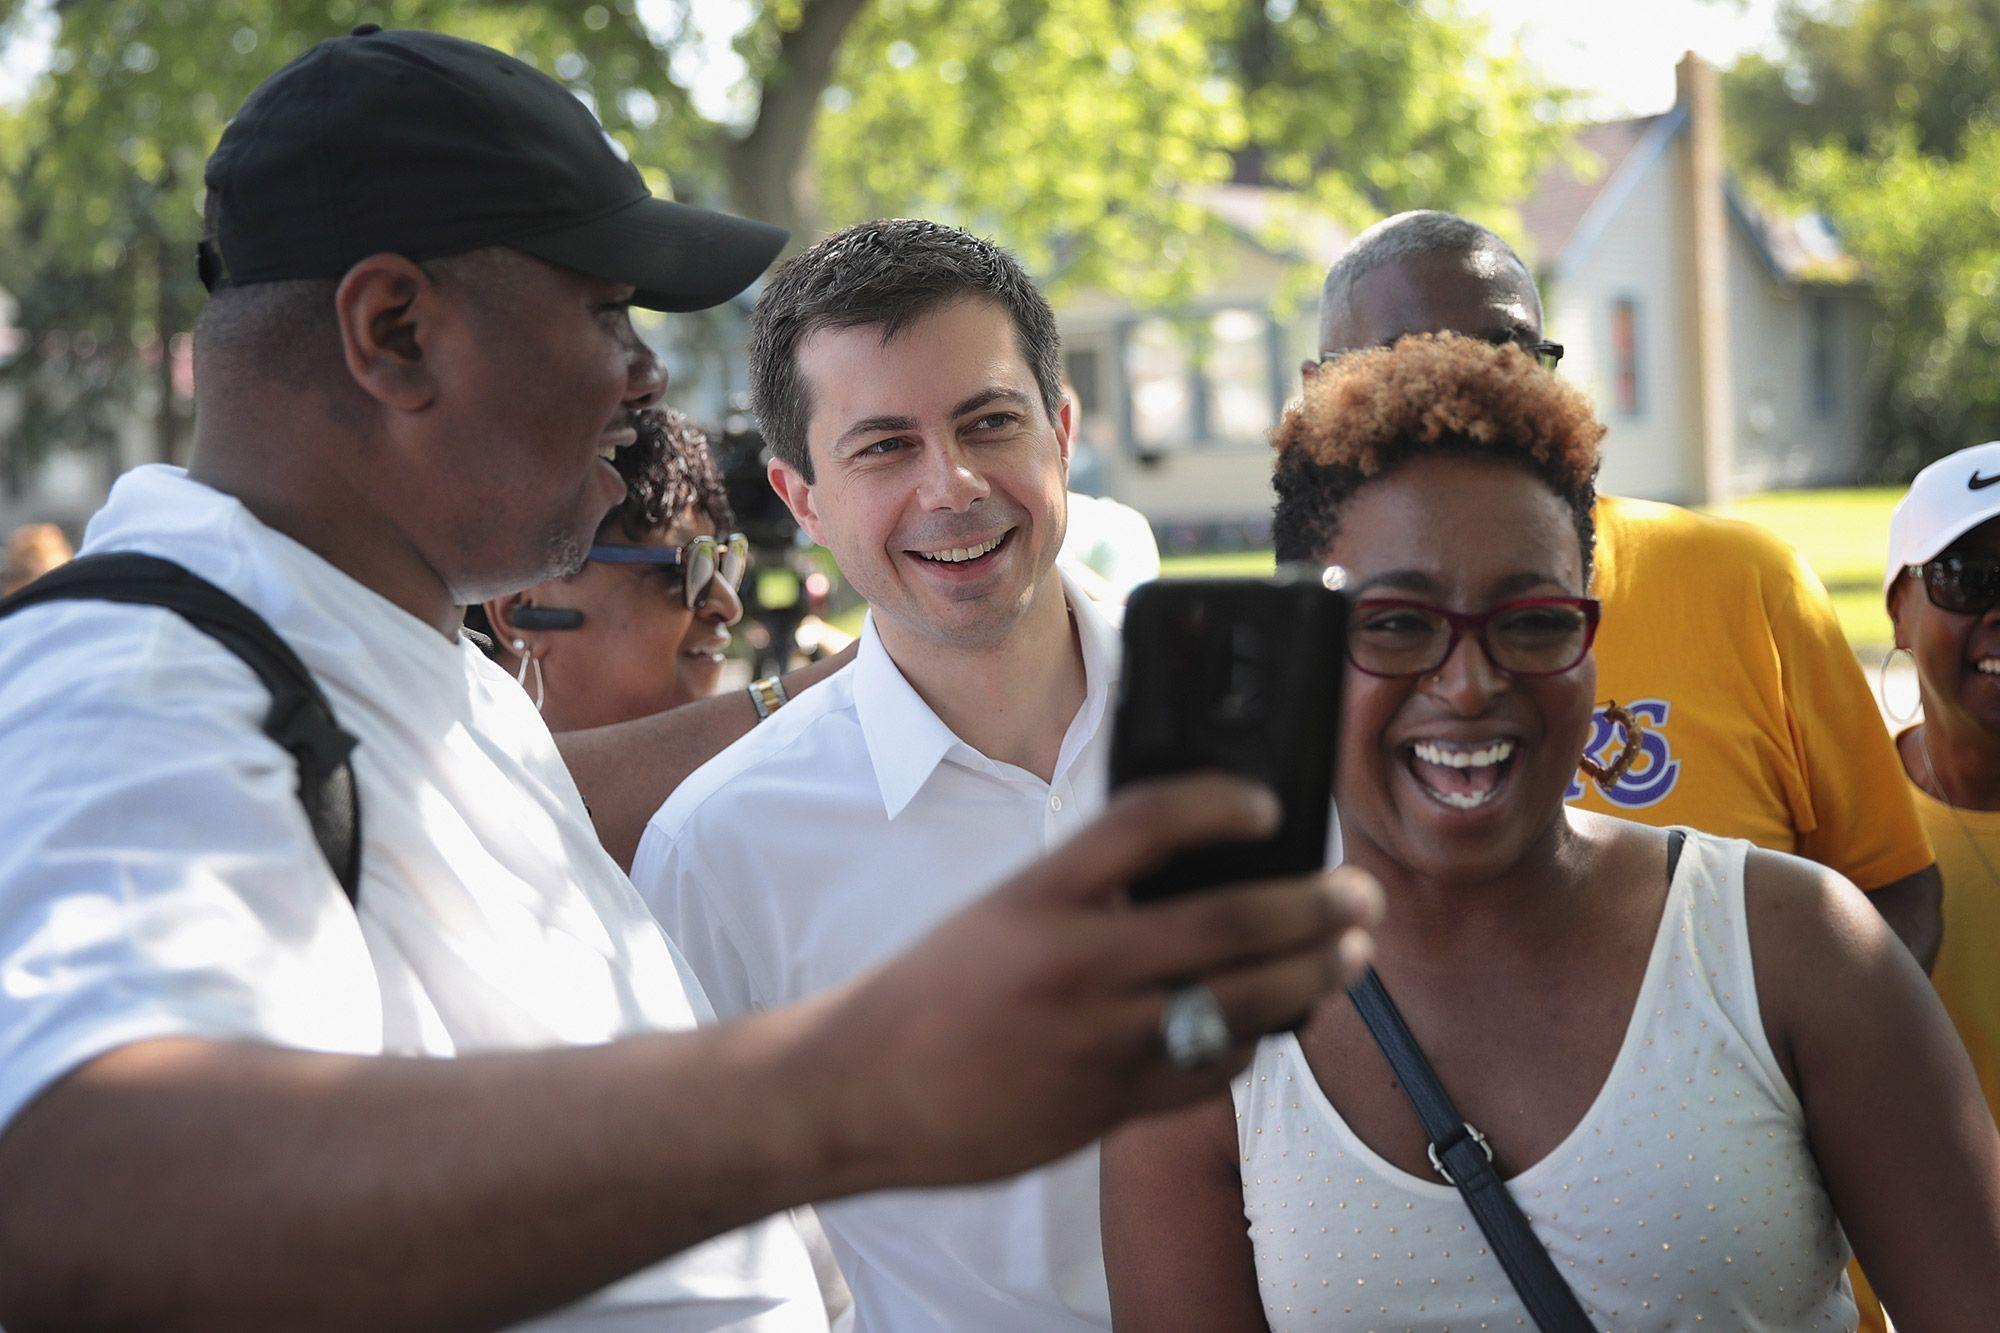 Pete Buttigieg More Than Triples His Fundraising Amount